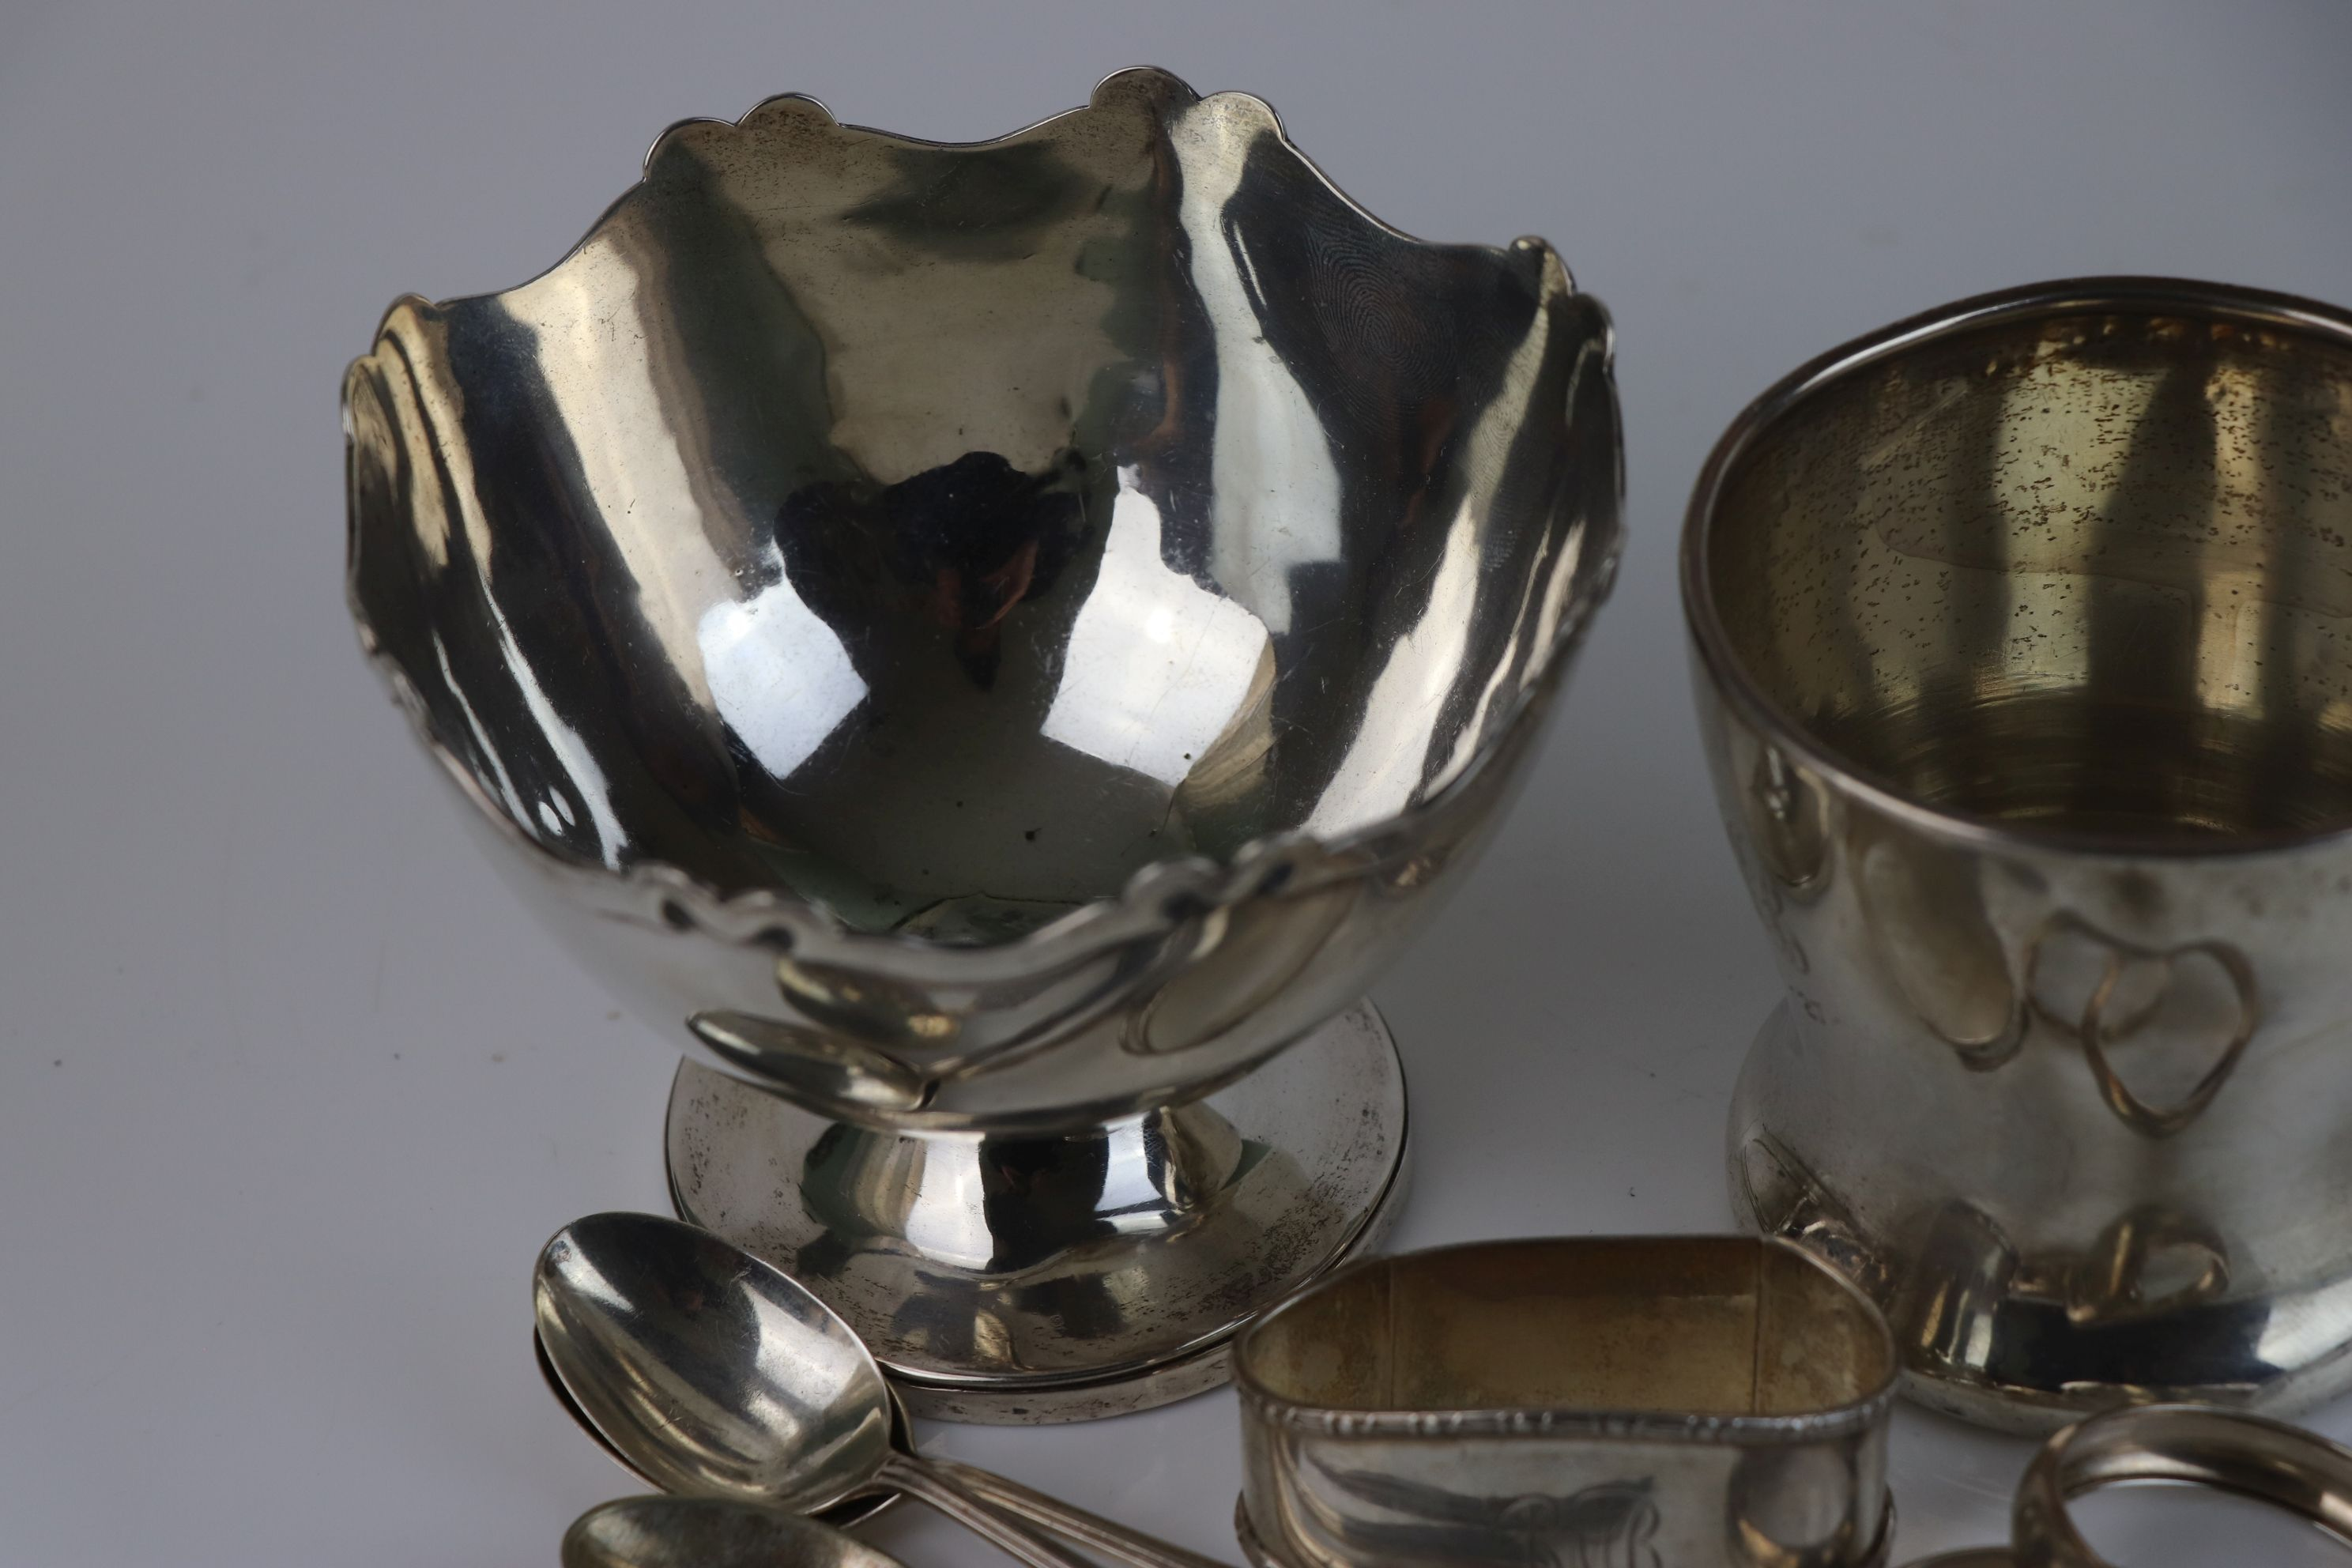 A collection of fully hallmarked sterling silver to include sugar bowl, cup, napkin rings and - Image 3 of 6